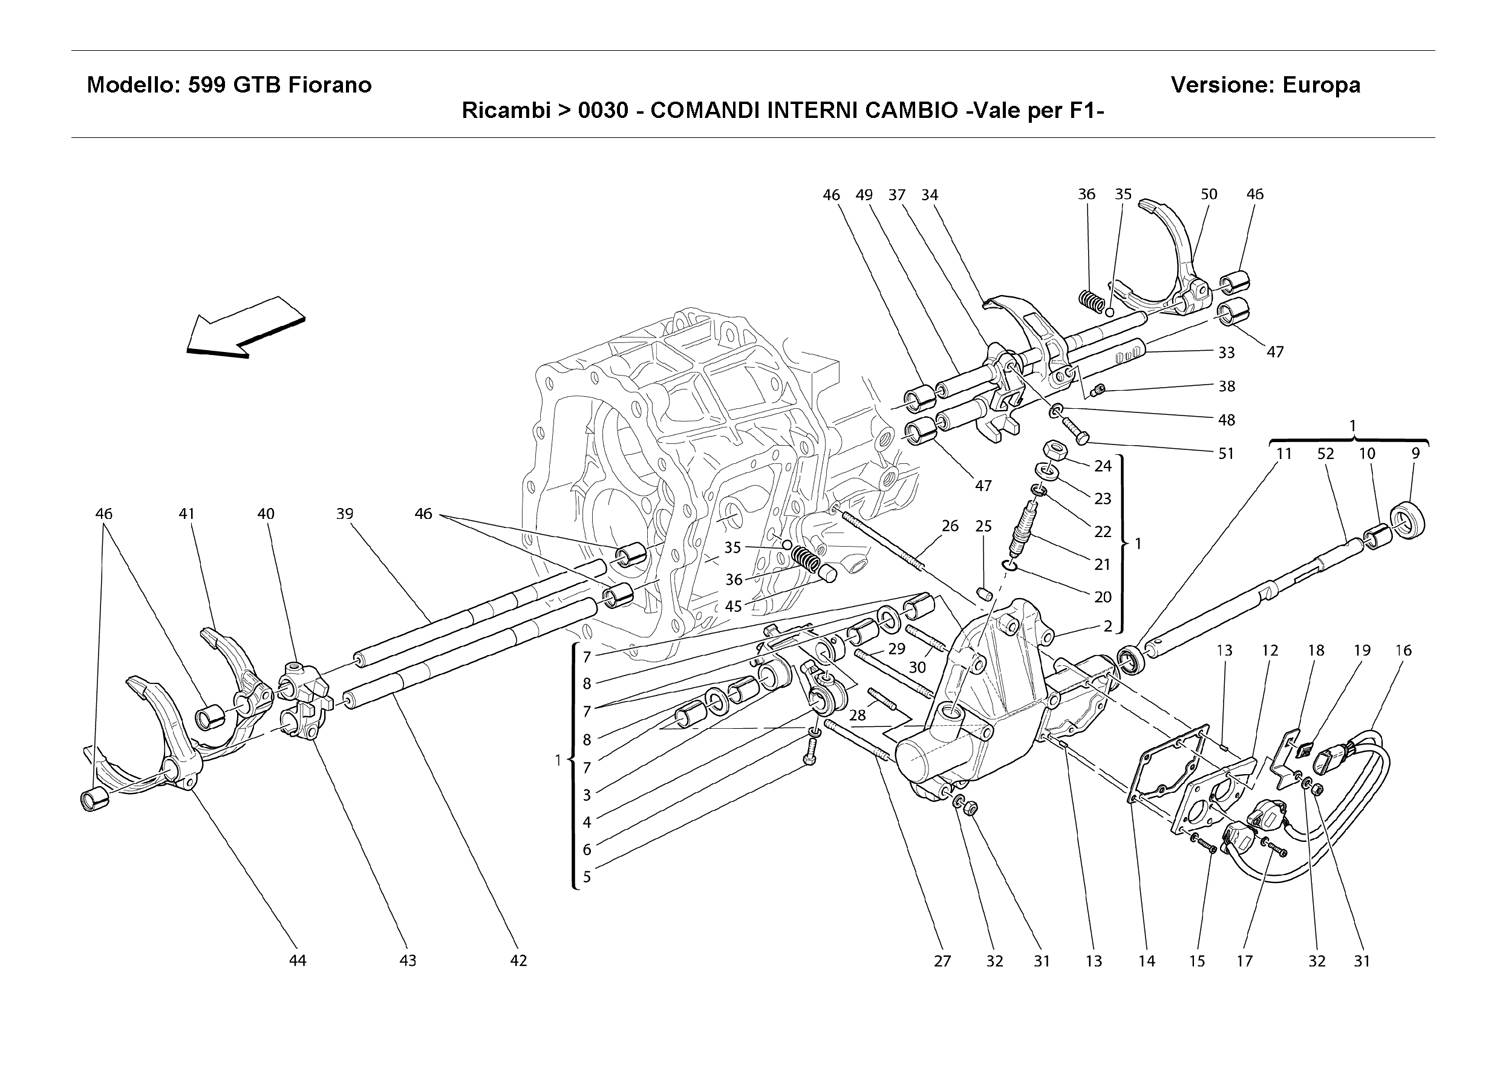 INSIDE GEARBOX CONTROLS -Valid for F1-